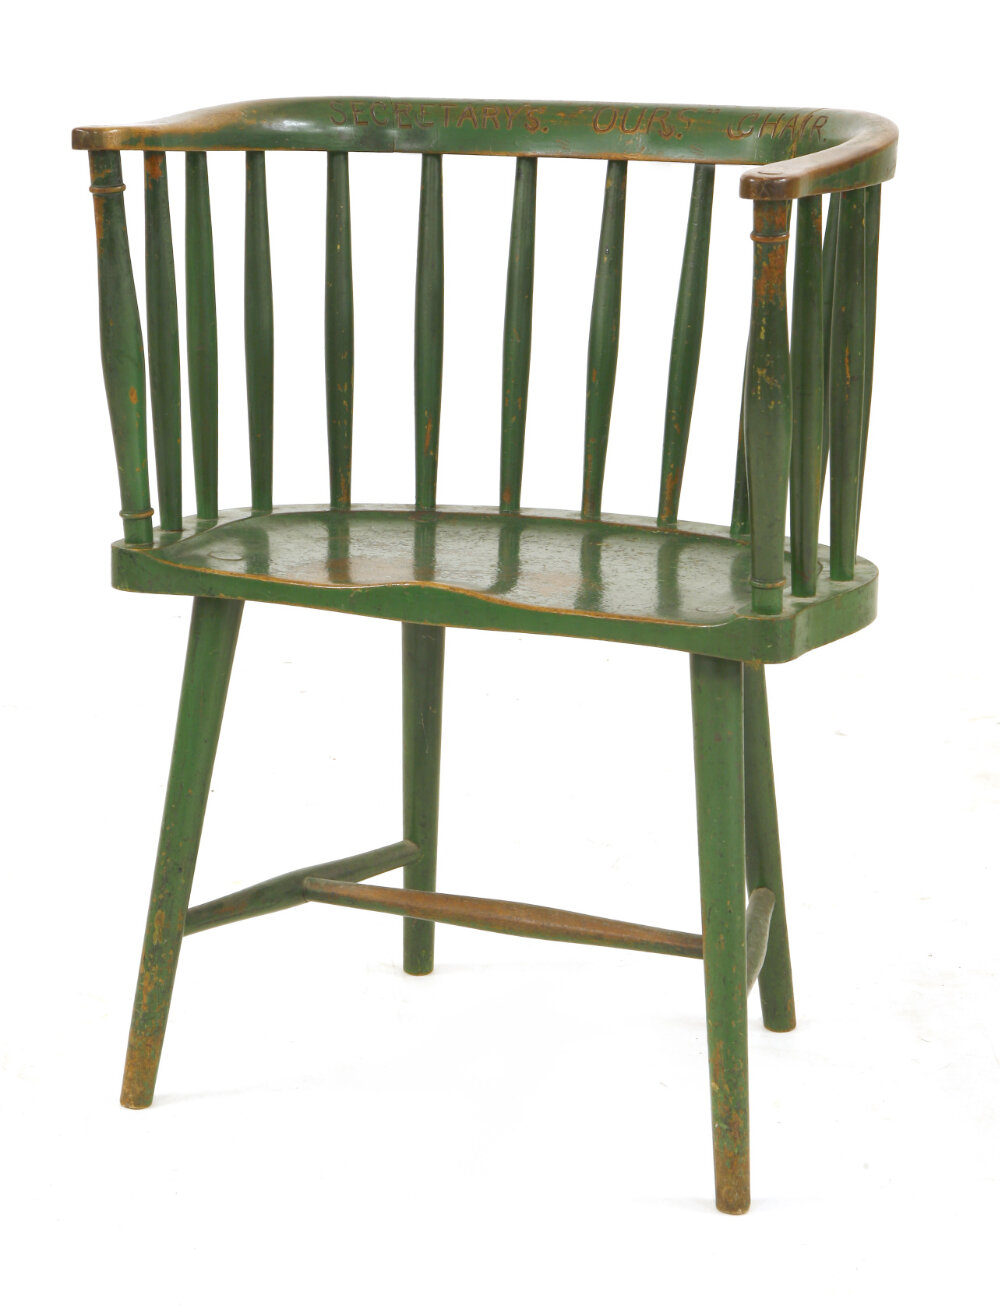 Charles Rennie Mackintosh (1868-1928), a green painted Windsor chair, designed for Miss Cranston's Dutch Kitchen, Argyle Tearooms, Glasgow, 1906, with a later inscribed top rail 'Secretary's OURS Chair'.    Estimate: £5,000-7,000